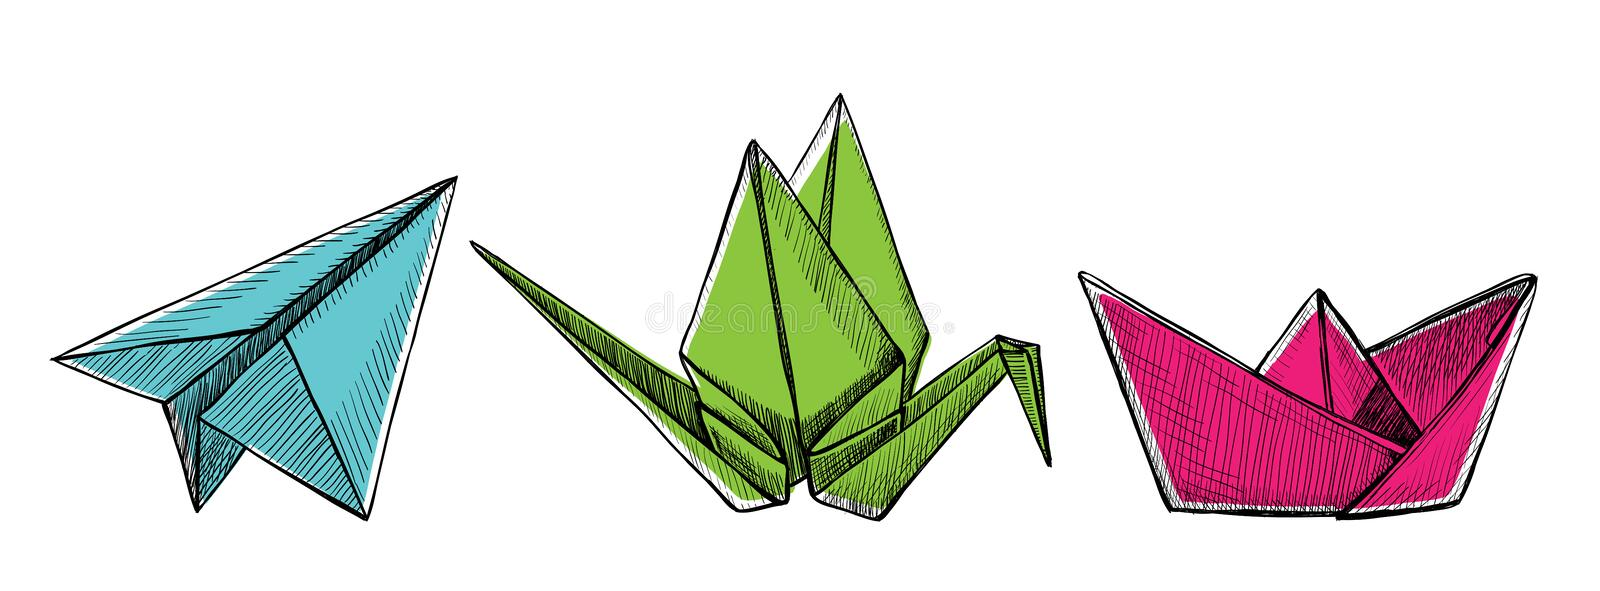 Origami plane, crane and boat, vector hand drawn graphic illustration royalty free illustration